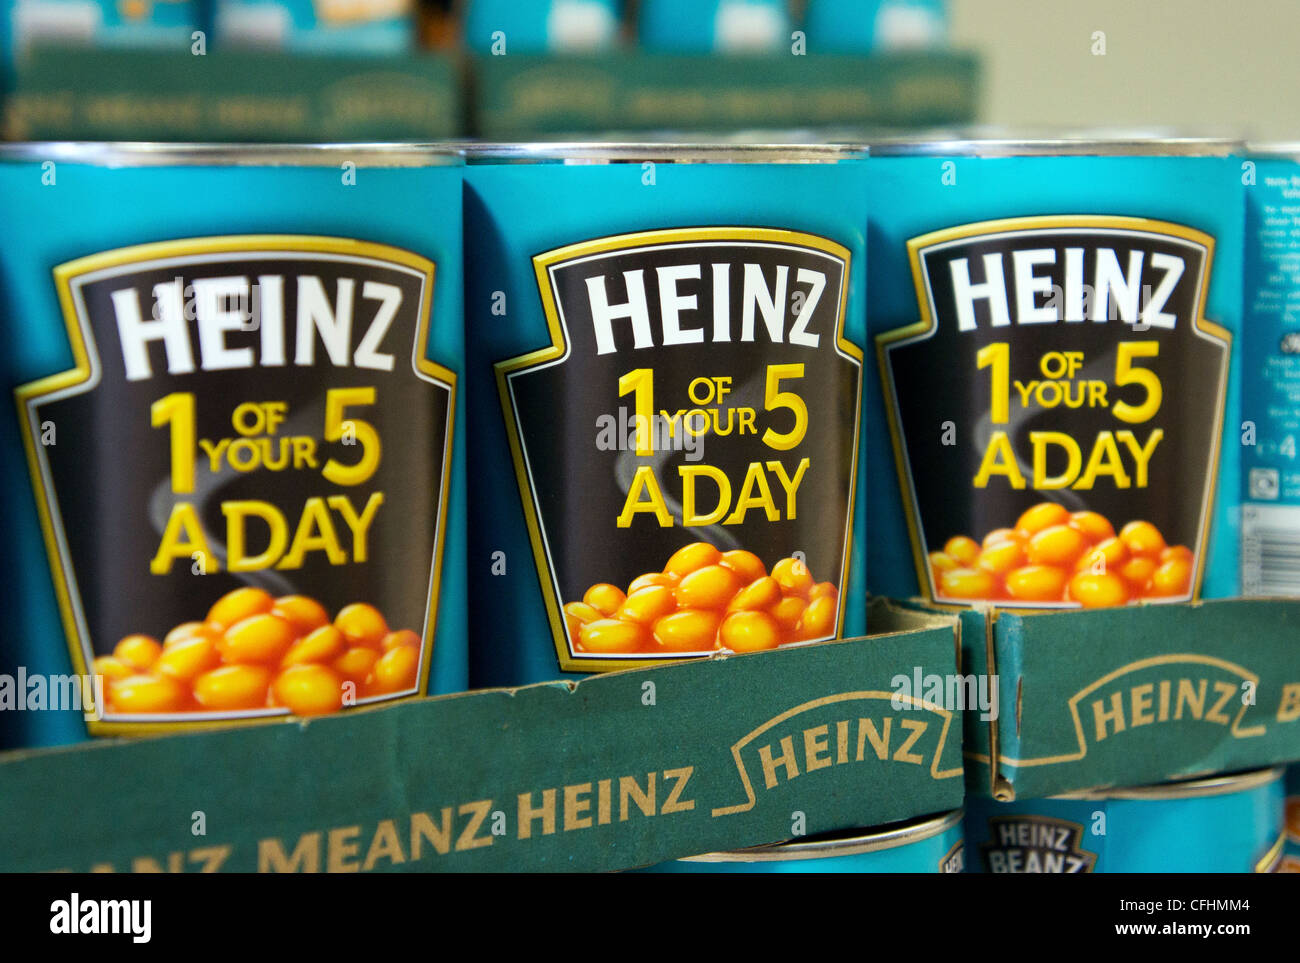 Tins of Heinz Baked Beans - Stock Image